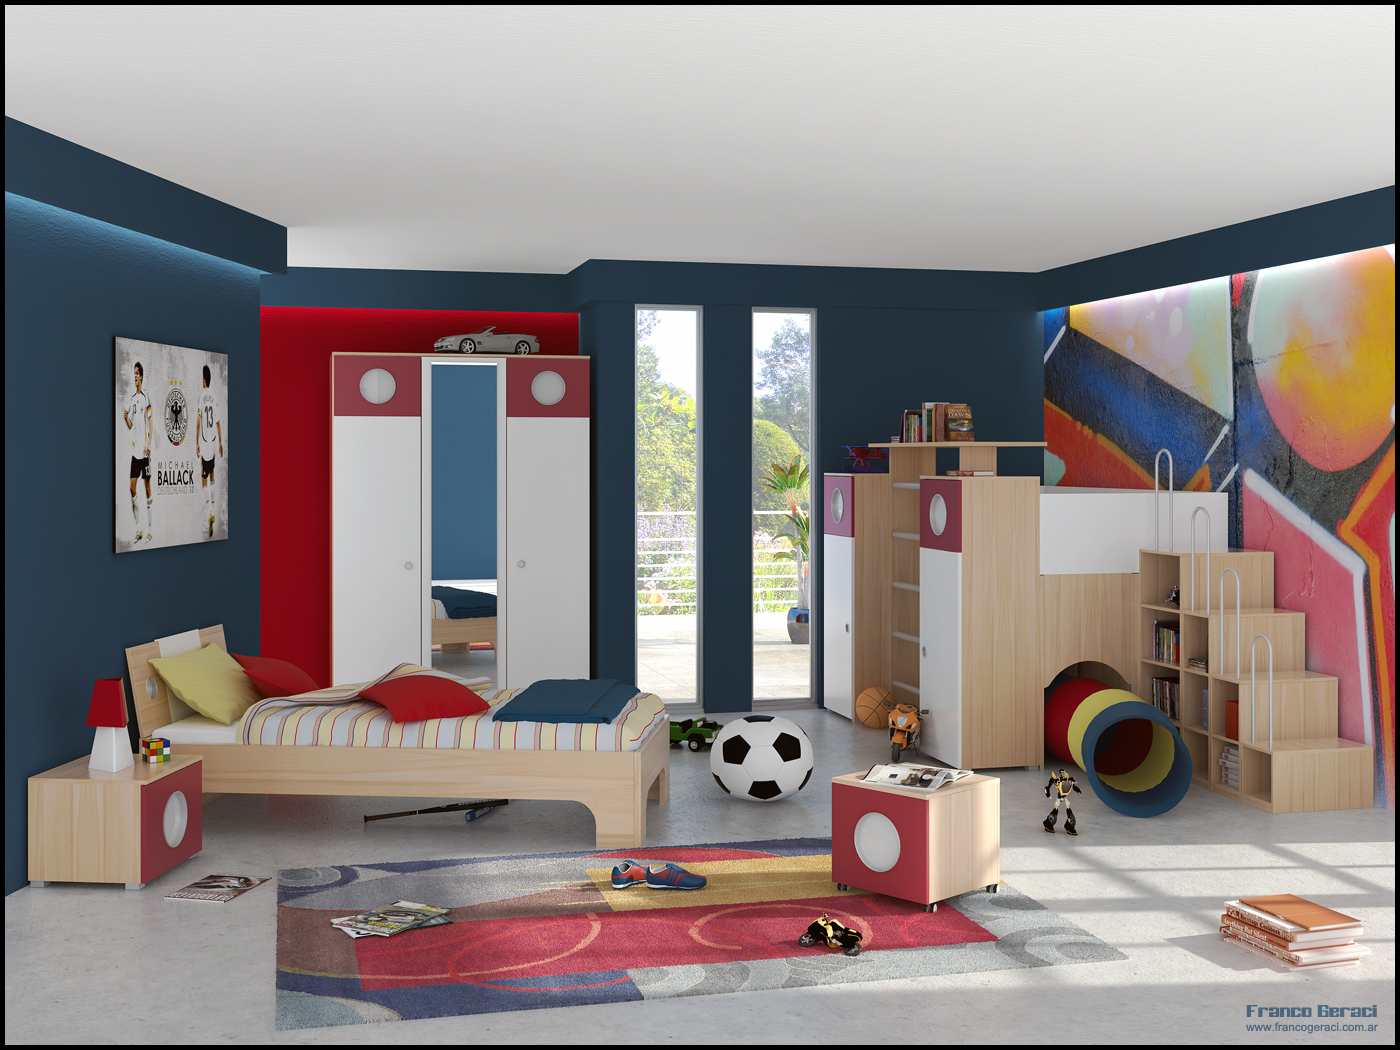 7 Inspiring Kid Room Color Options For Your Little Ones: Kids Room Inspiration